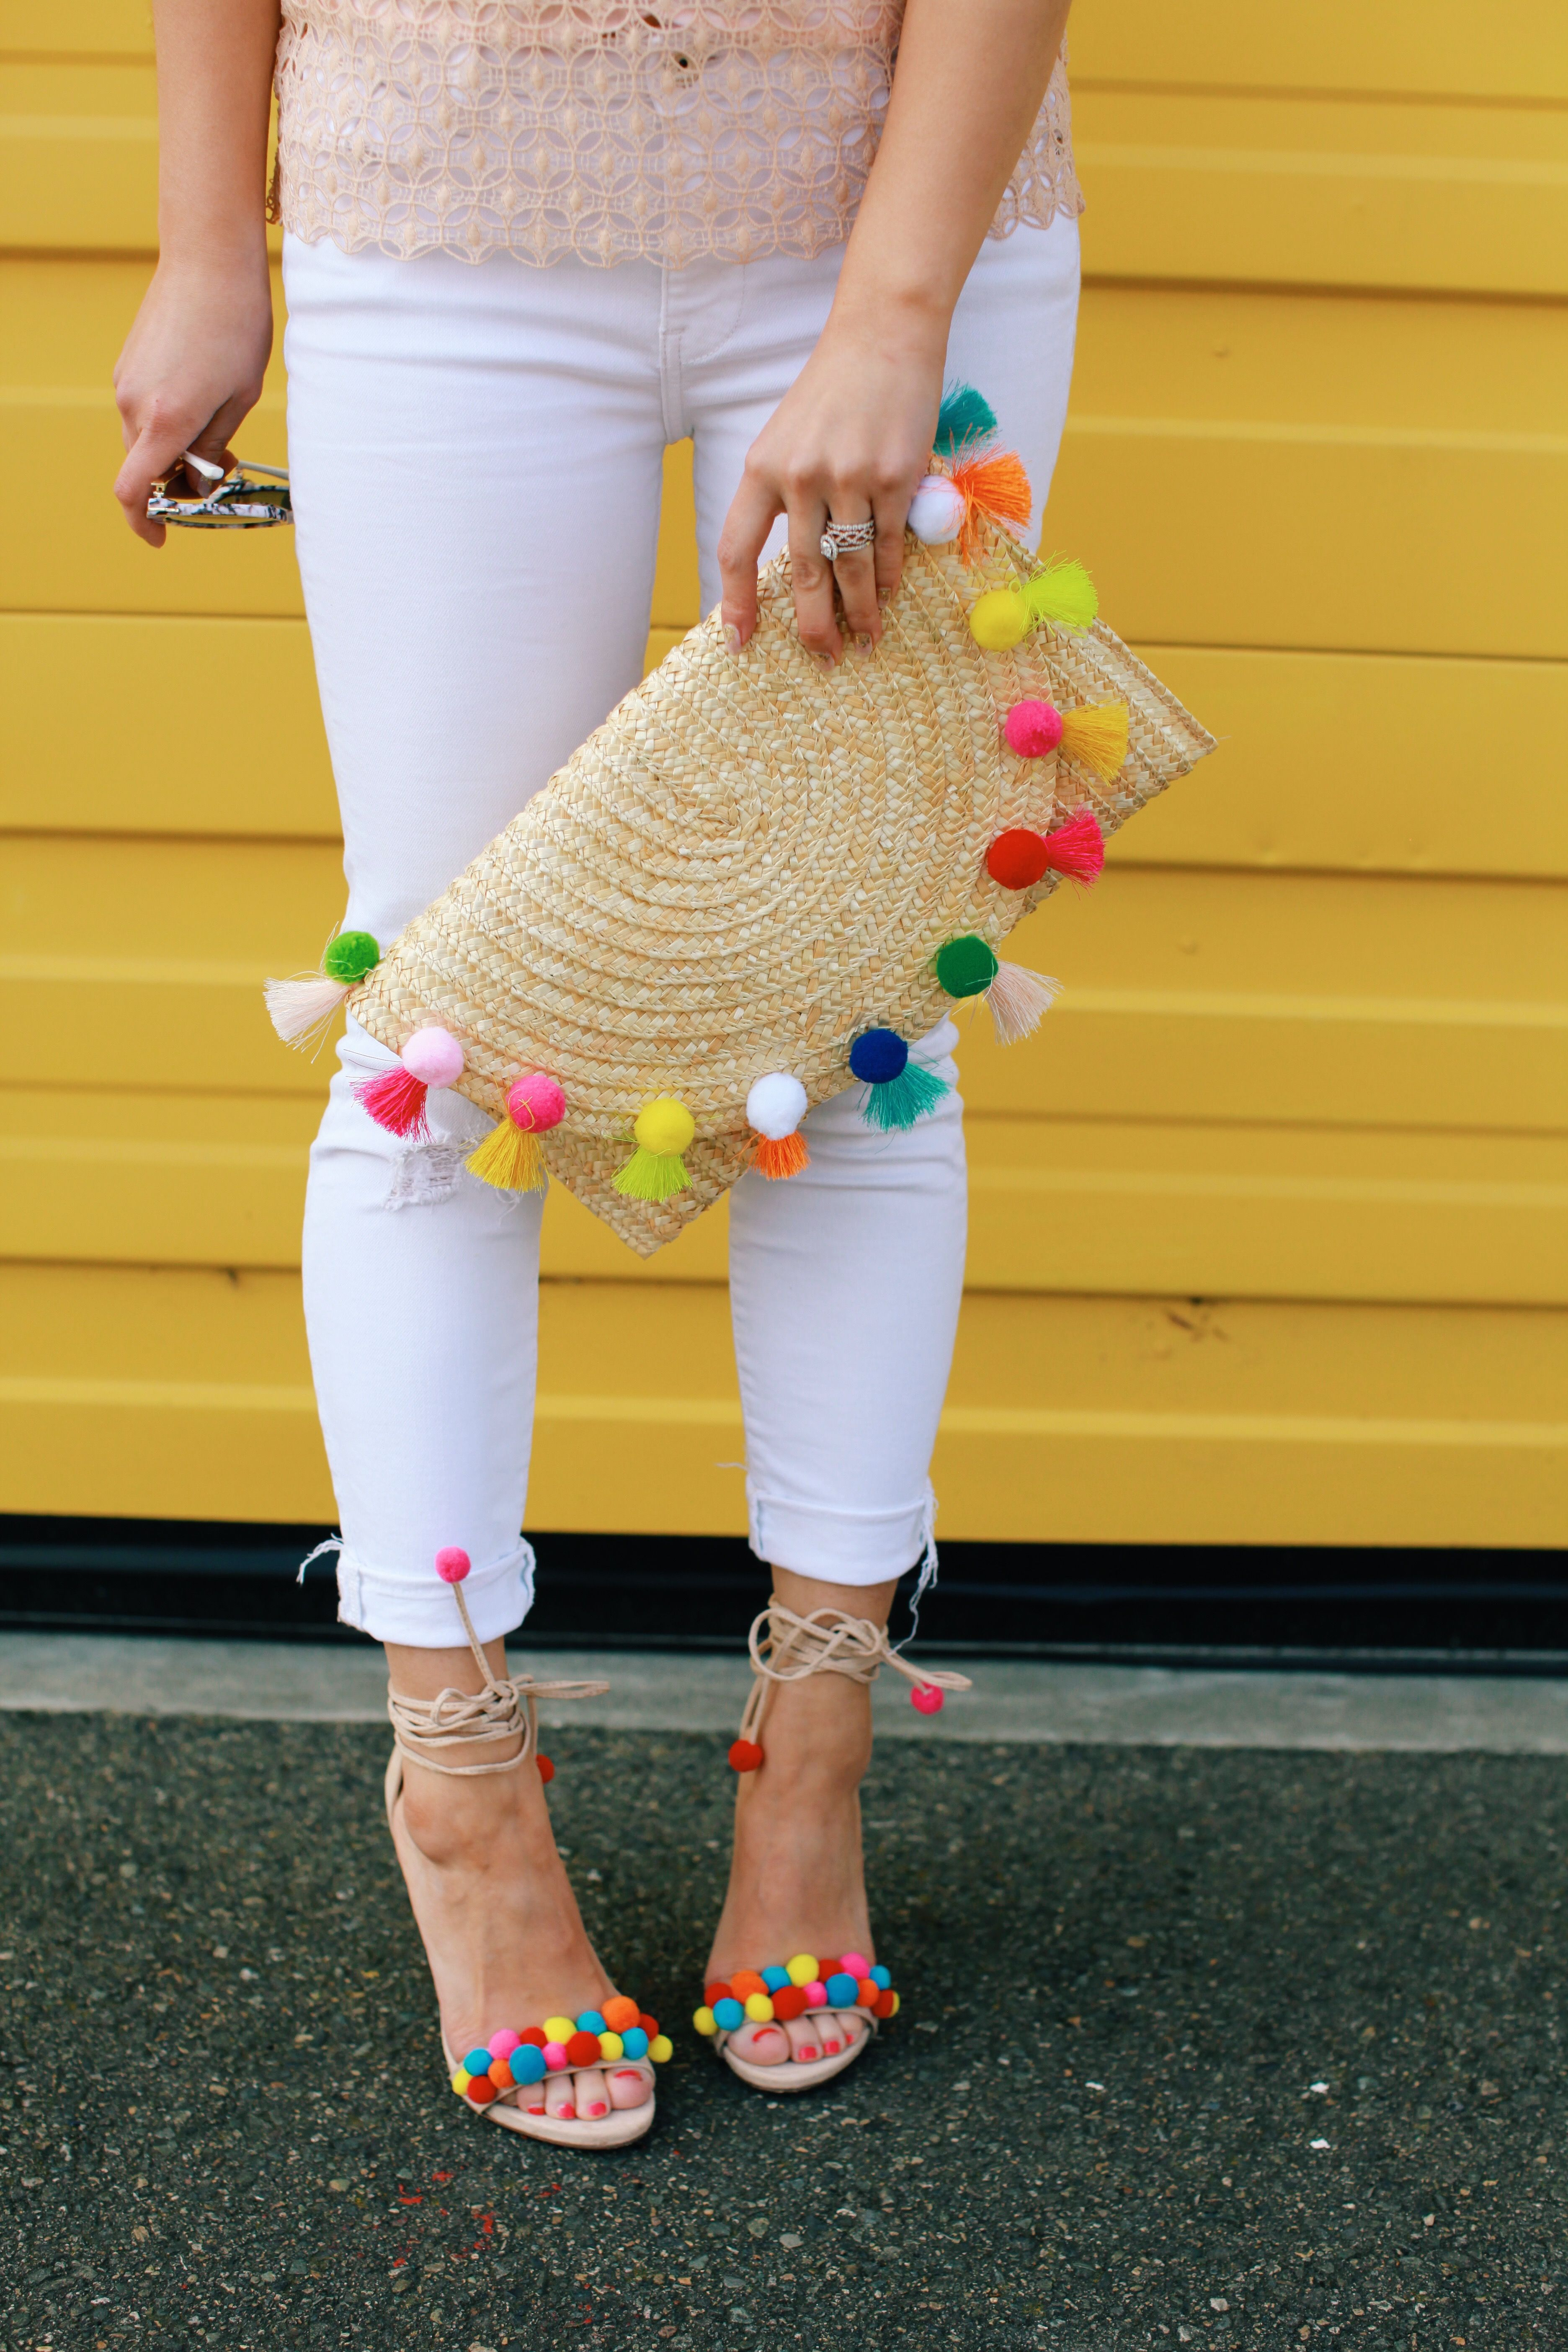 55653cfb6db The cutest pom pom shoes and clutch! We LOVE all things poms and color